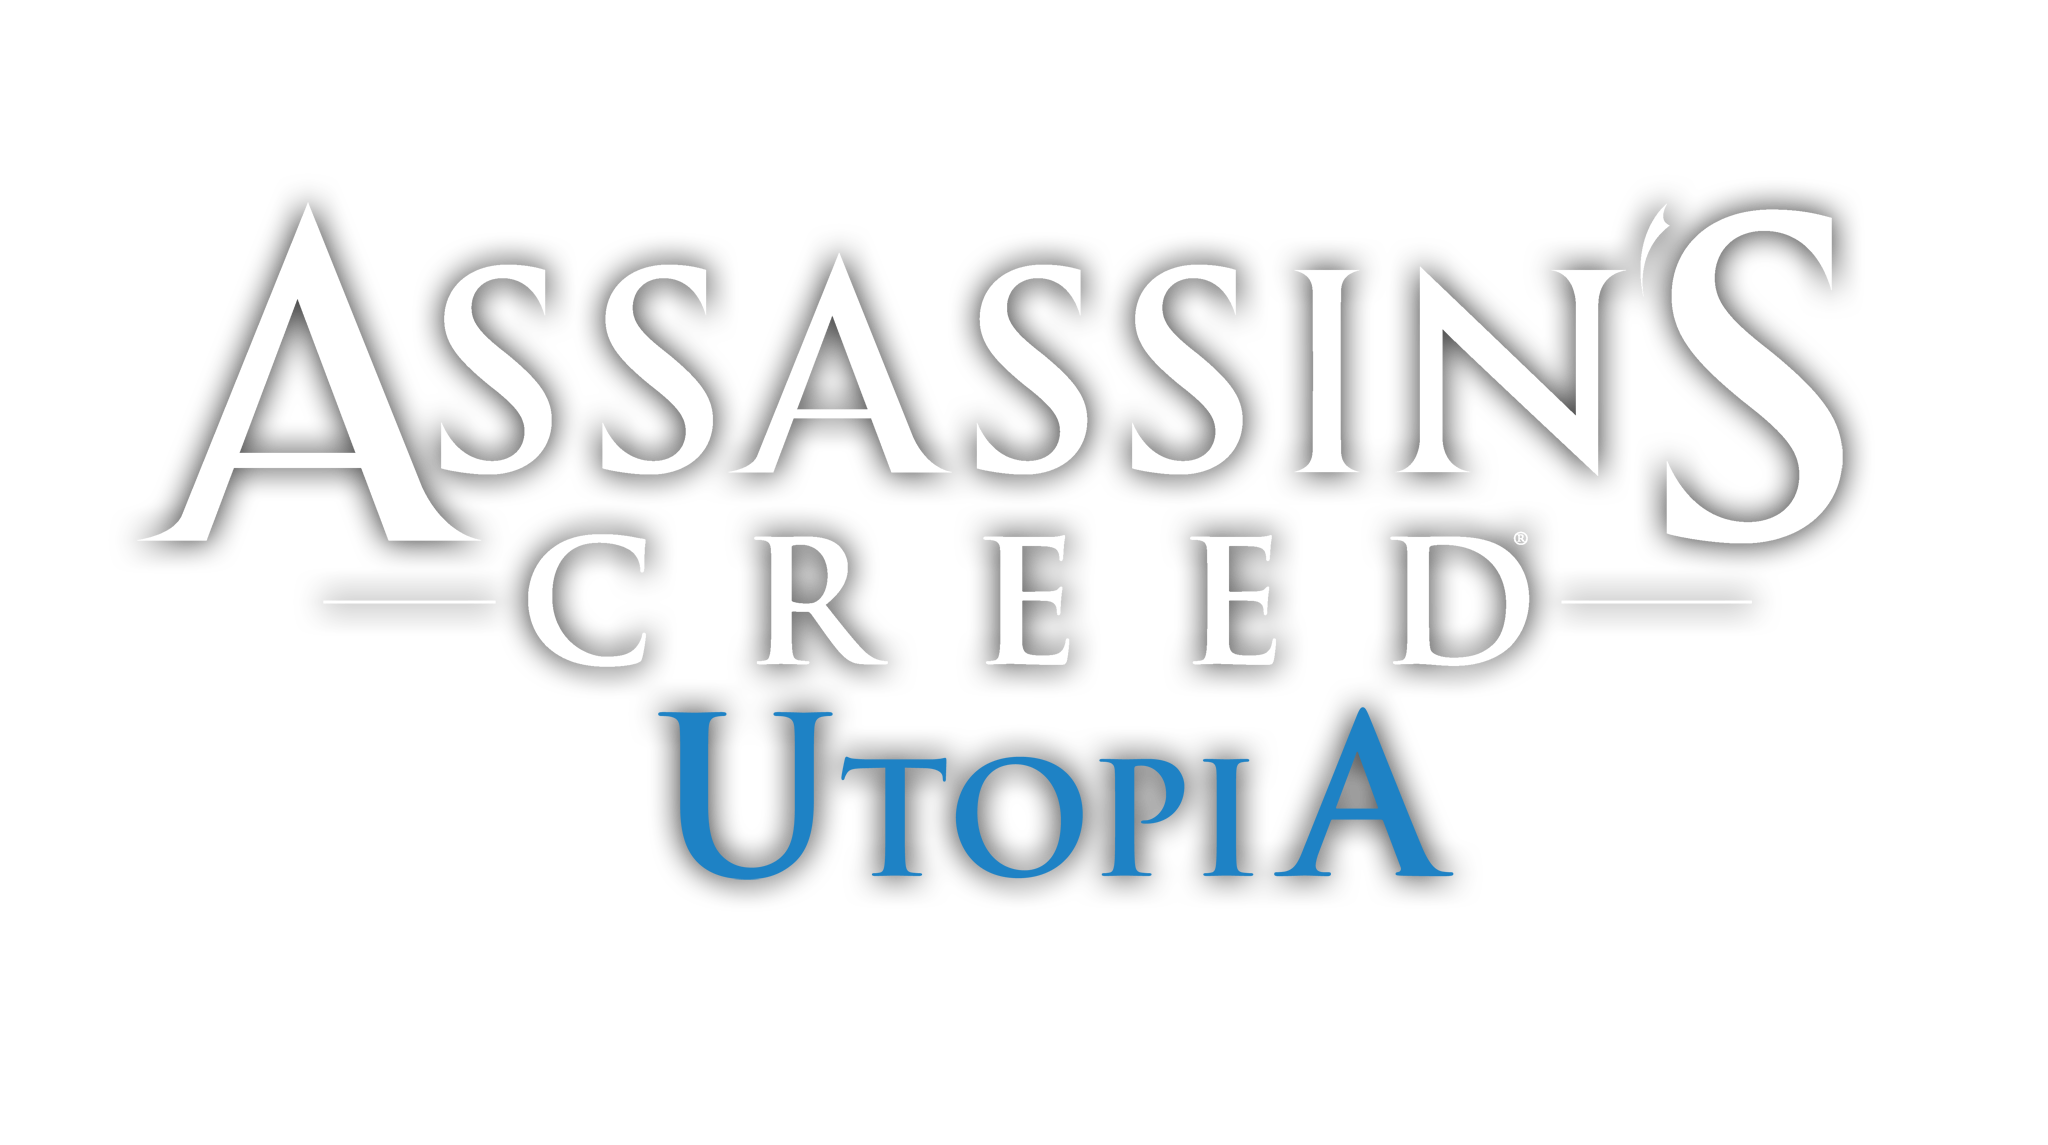 Assassins Creed Utopia logo